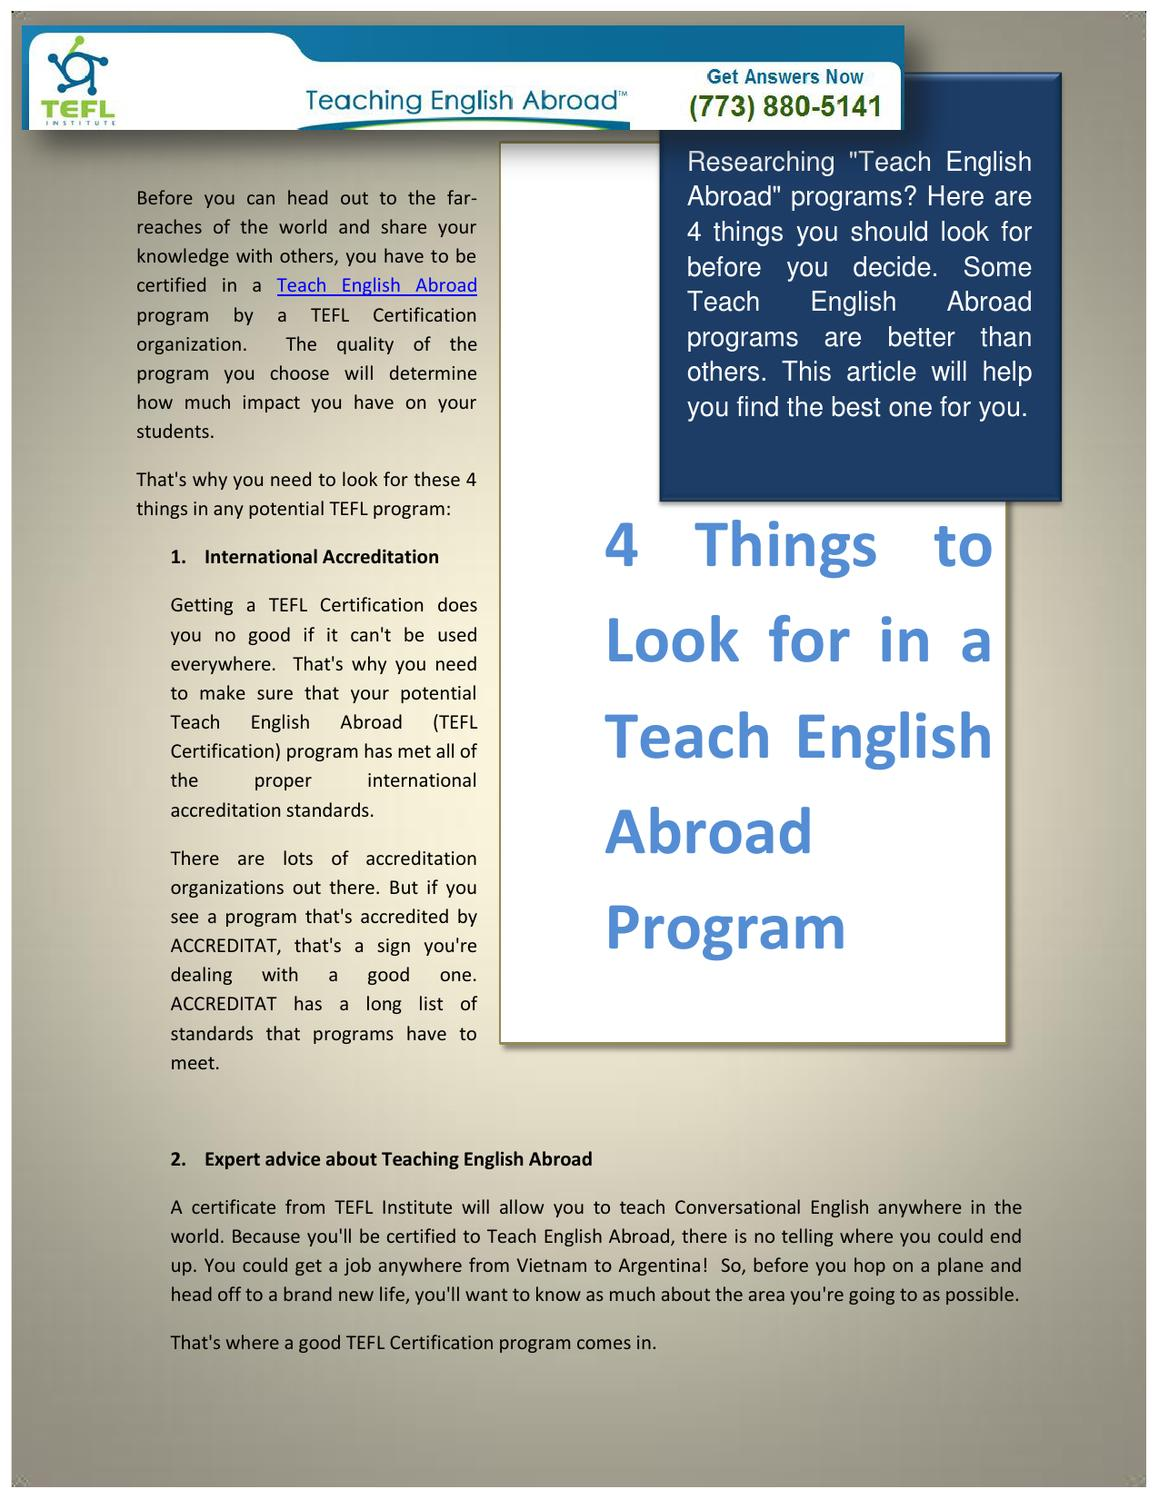 4 Things To Look For In A Teach English Abroad Program By Ti Ron